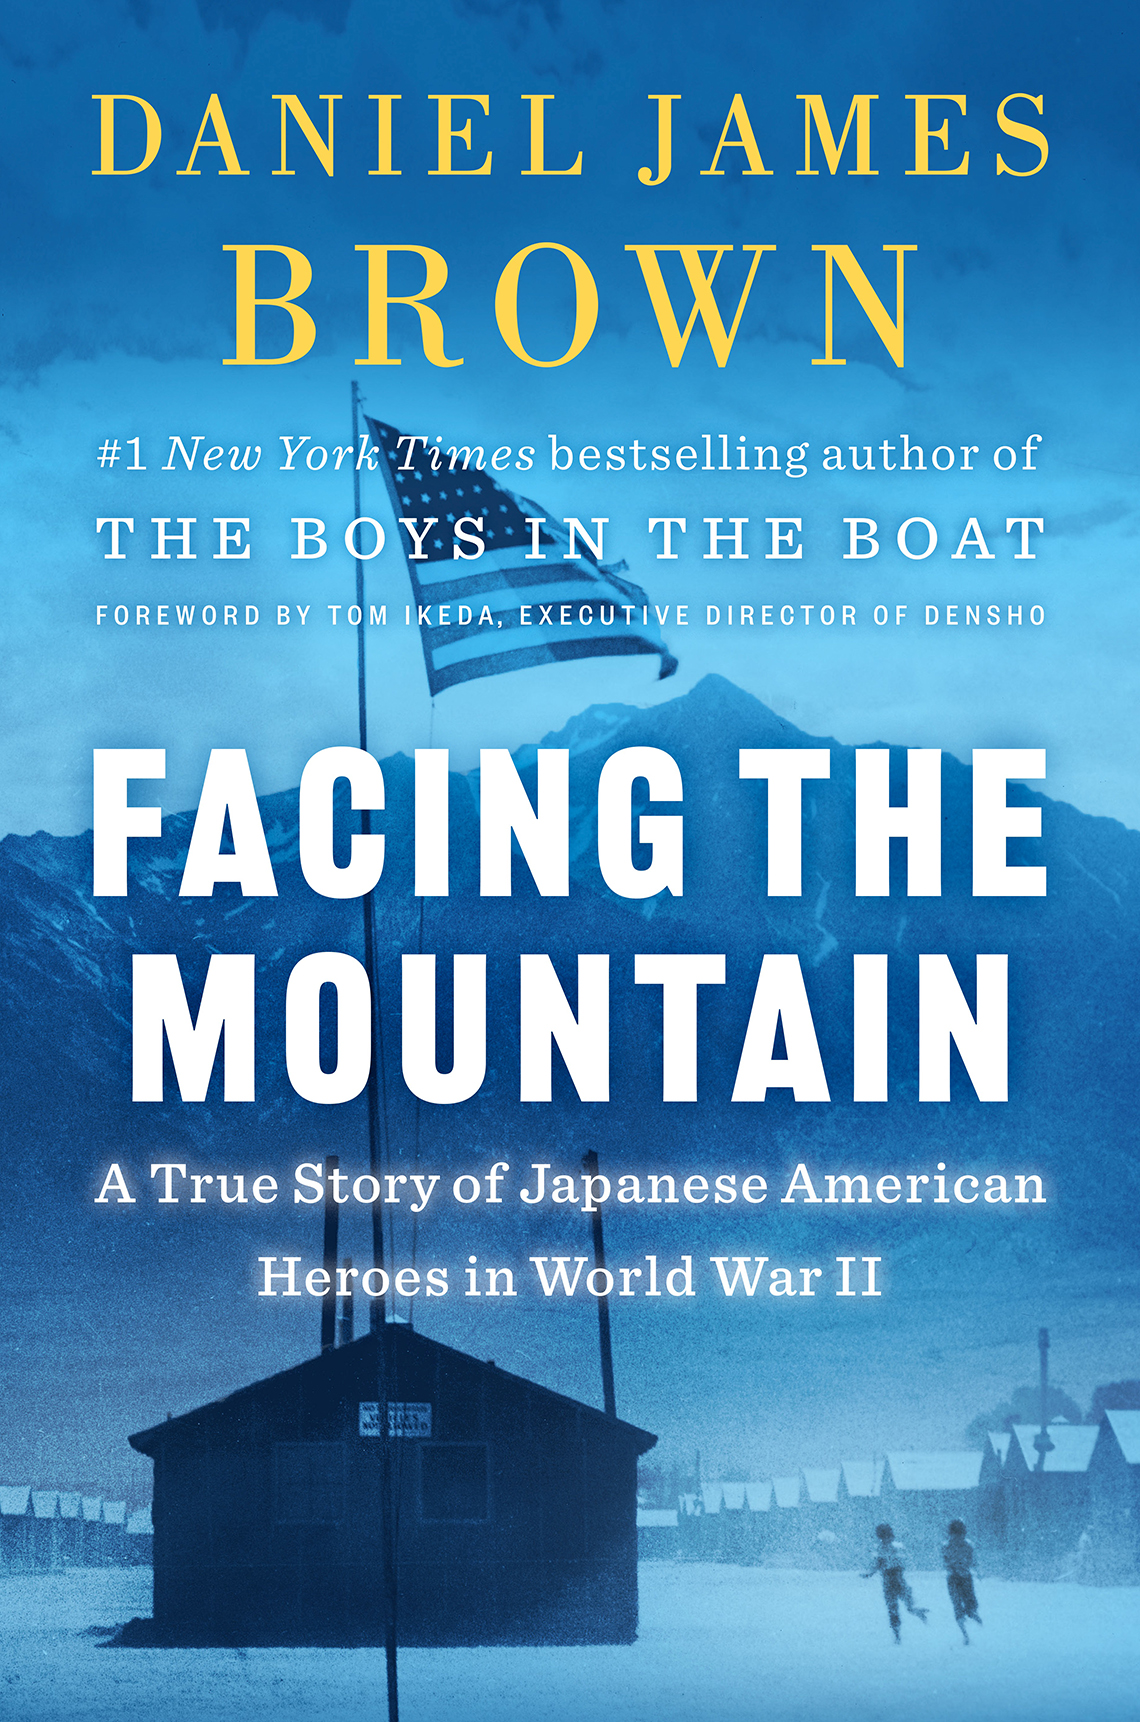 facing the mountain a true story of japanese american heroes in world war two by daniel james brown